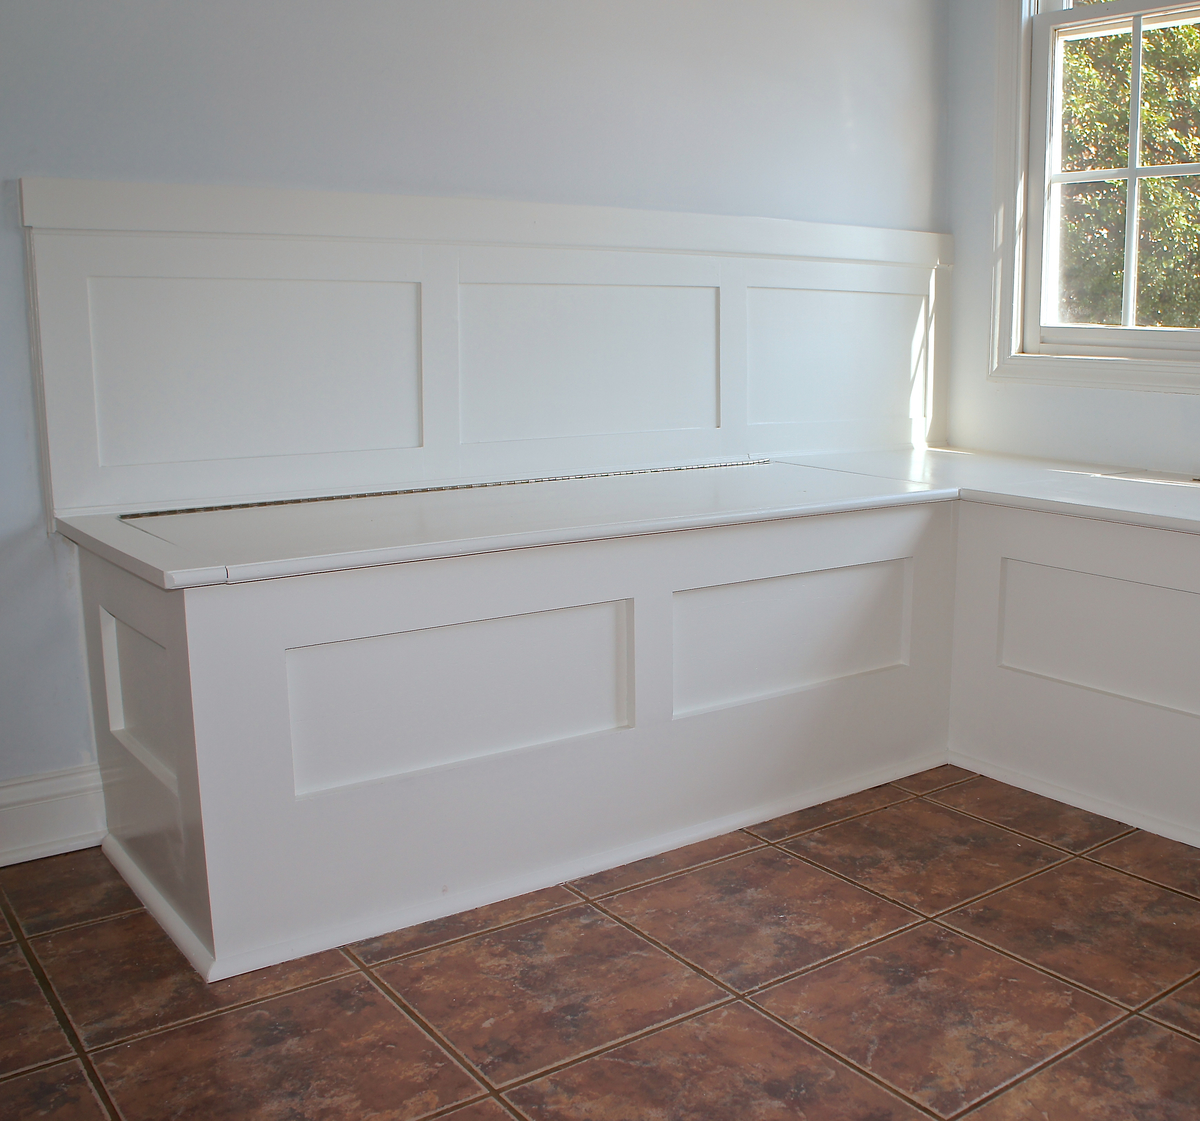 Ana White | Built In Storage Bench - DIY Projects